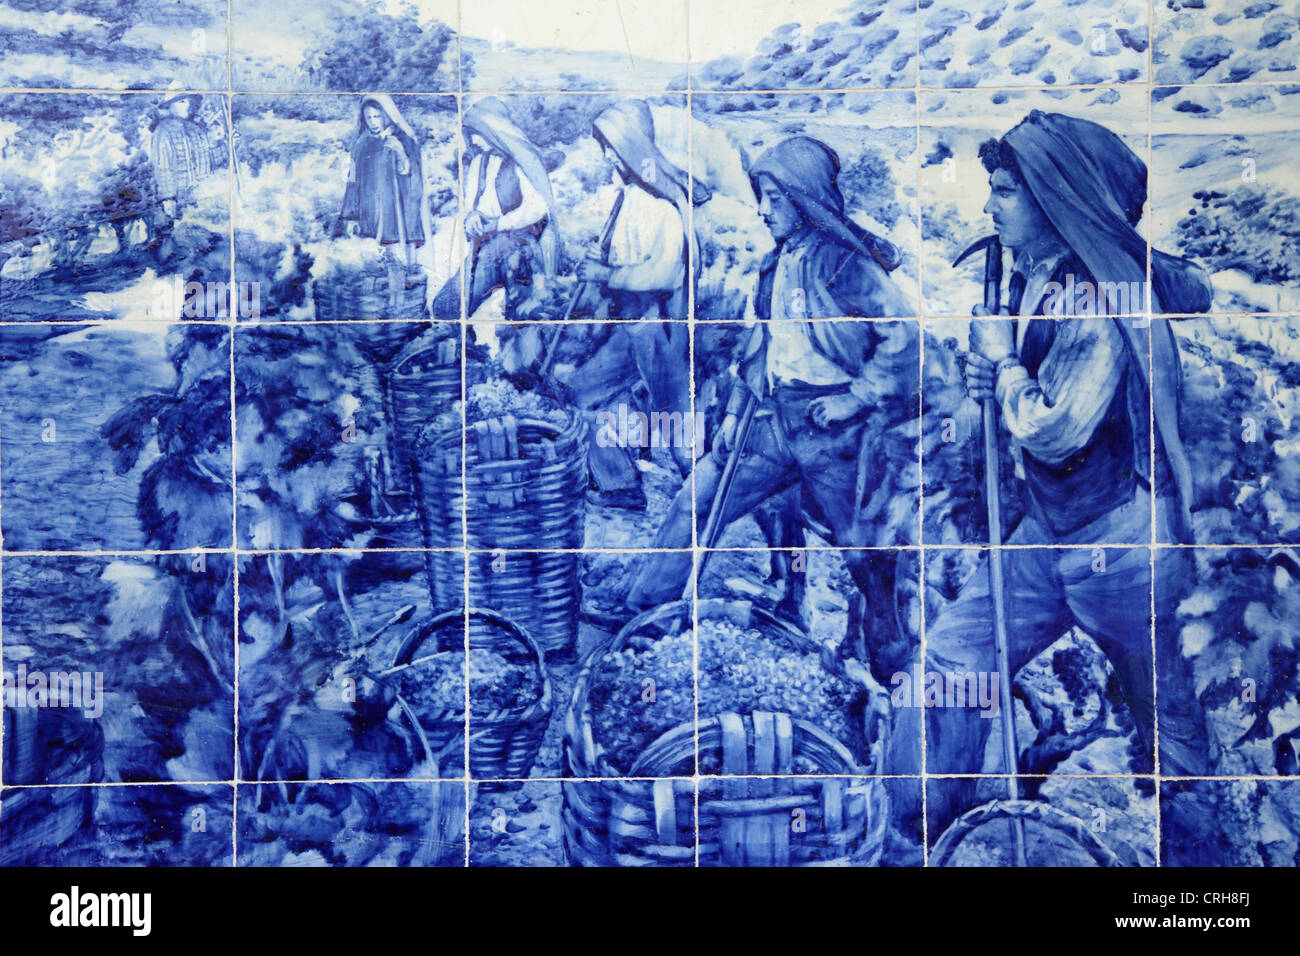 The grape harvest is depicted on azulejo tiles at the railway station in Pinhao, Portugal. - Stock Image